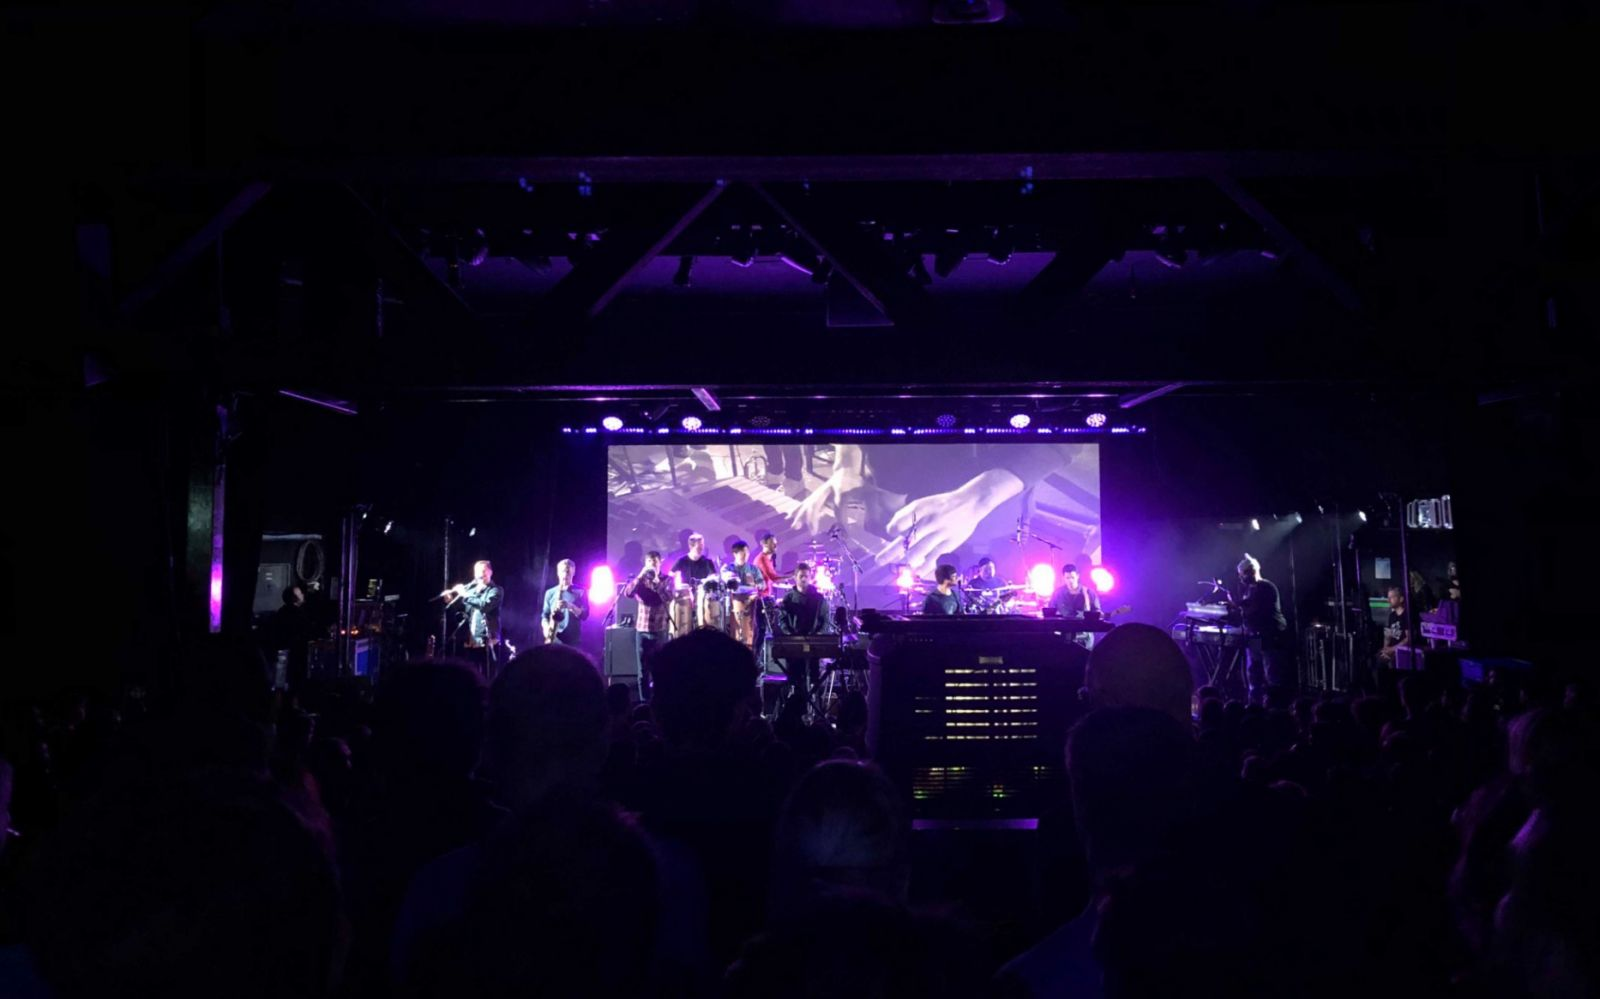 Snarky Puppy at Bristol's O2 Academy